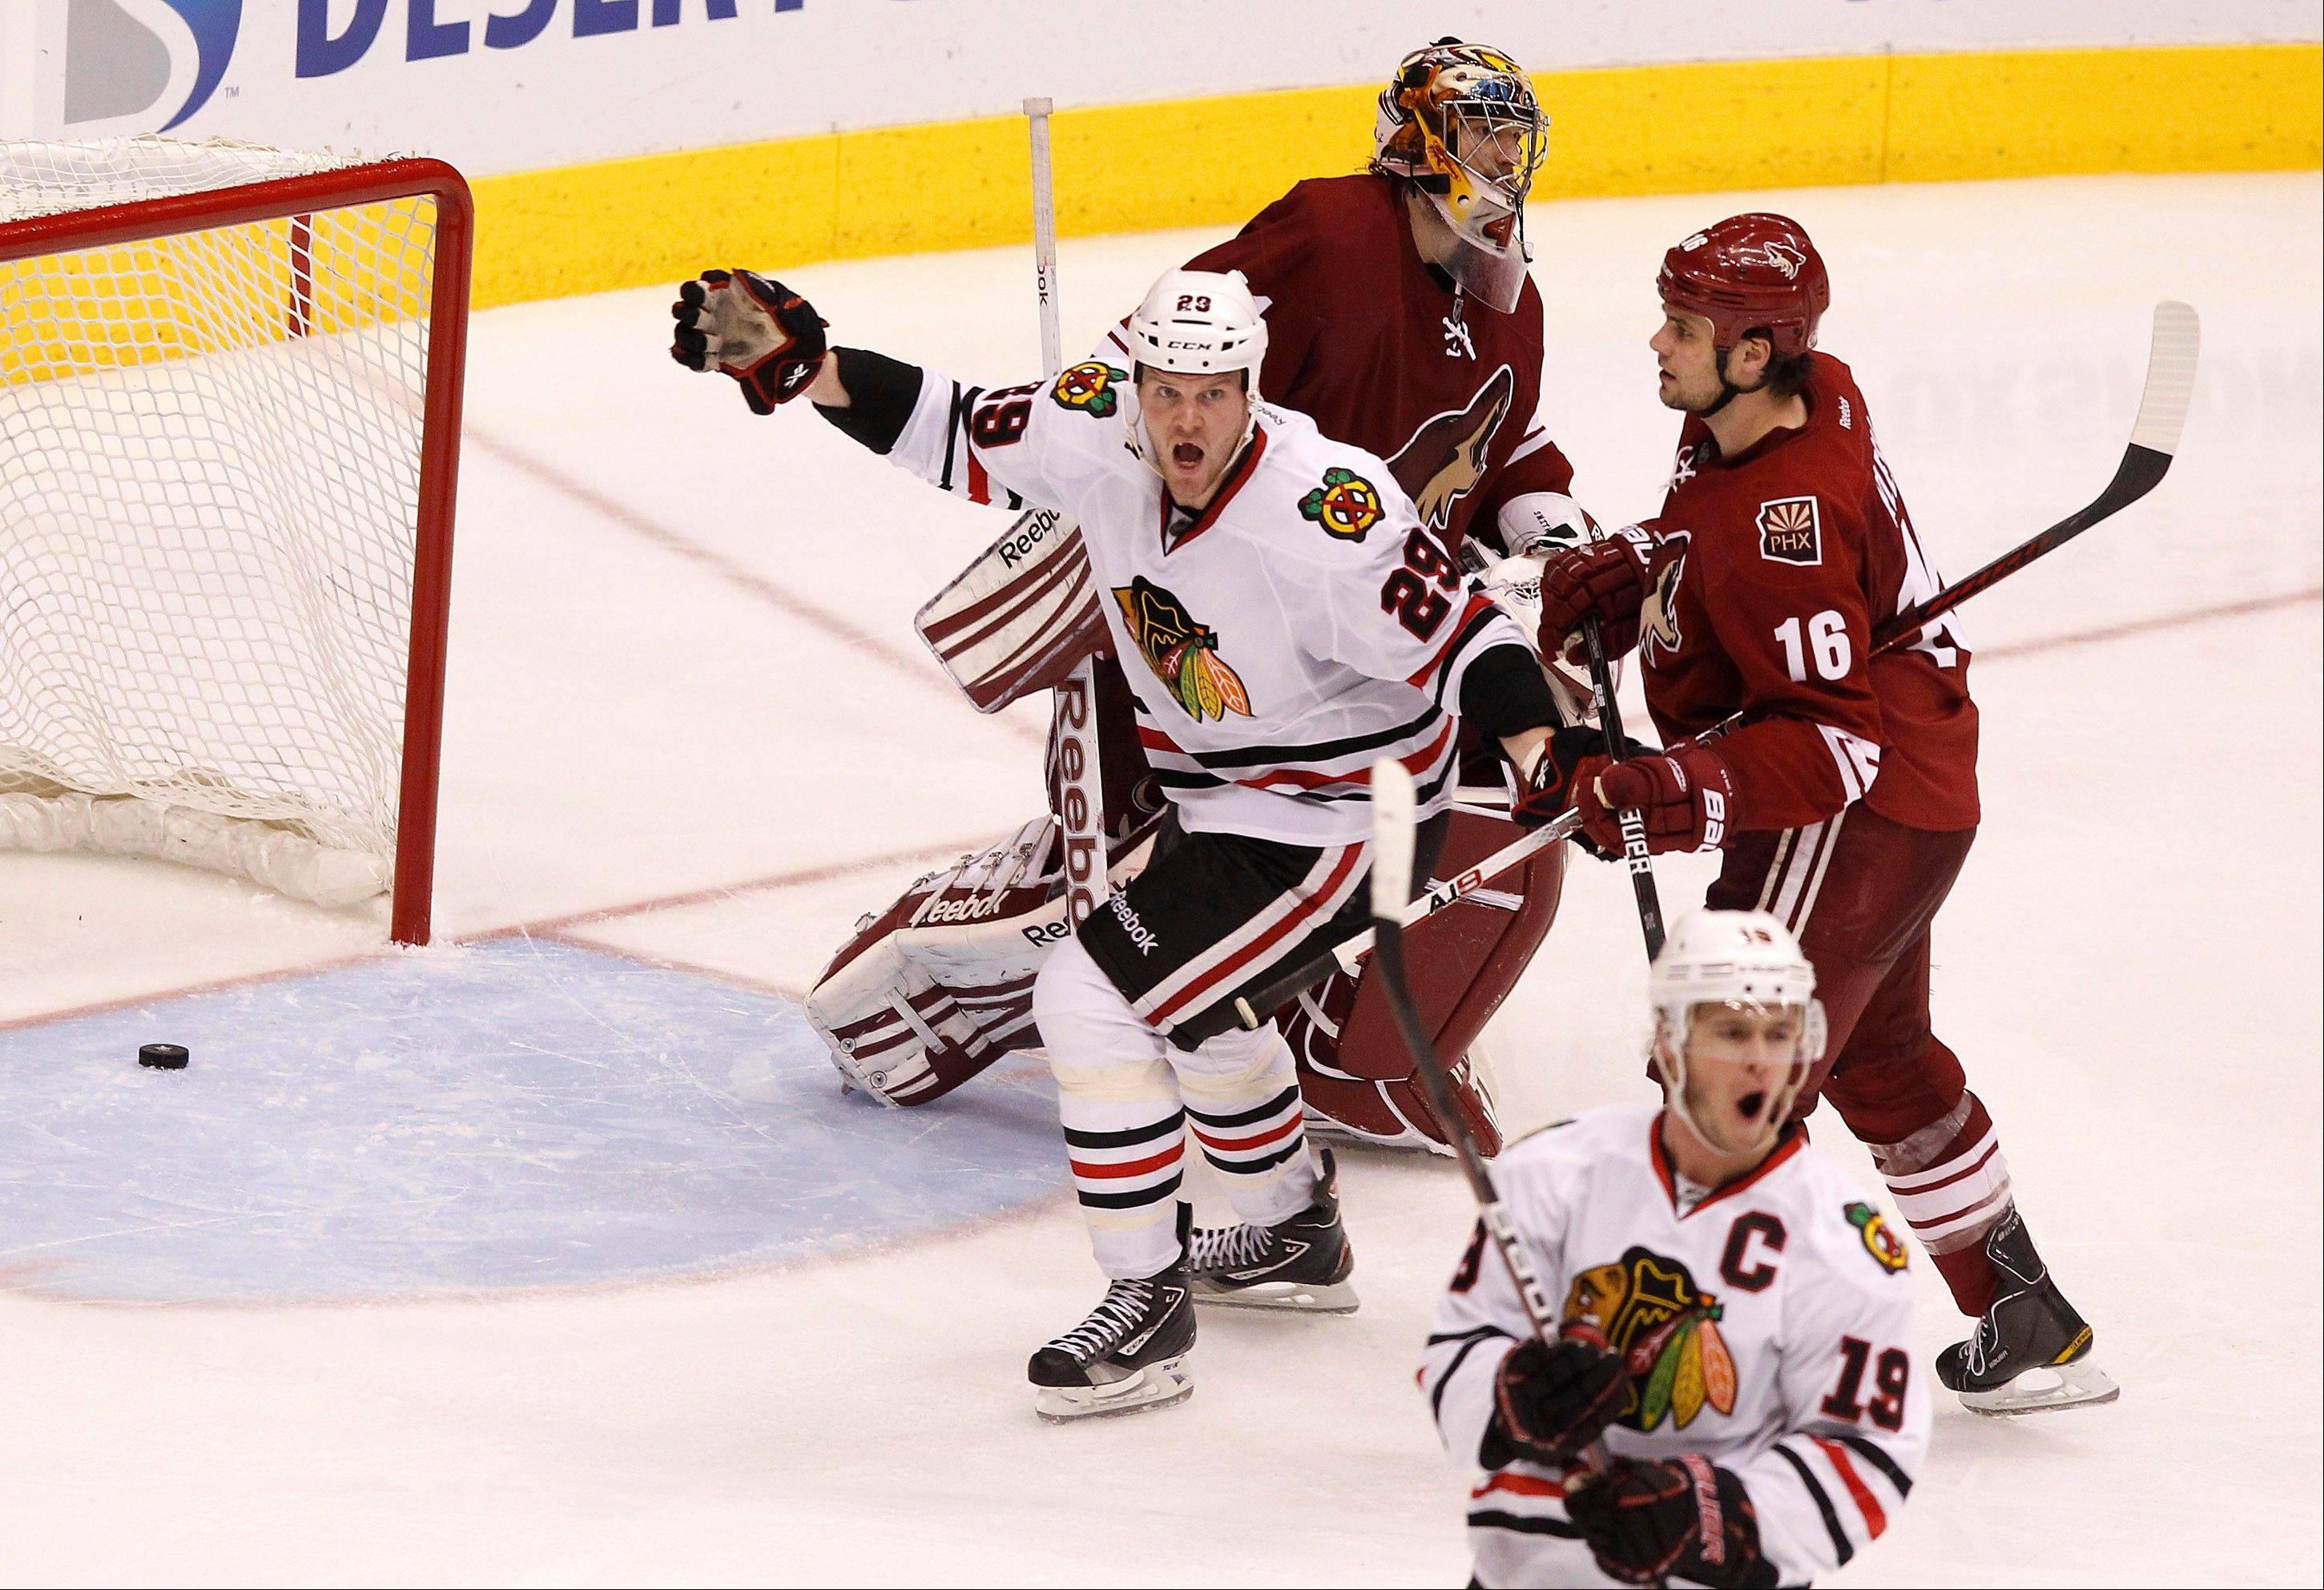 Blackhawks center Jonathan Toews celebrates his game-winning goal as teammate Bryan Bickell (29) joins him in celebration as the Phoenix Coyotes' Rostislav Klesla and goalie Mike Smith skate away Saturday during overtime in Game 5 in Glendale, Ariz. The Blackhawks defeated the Coyotes 2-1.